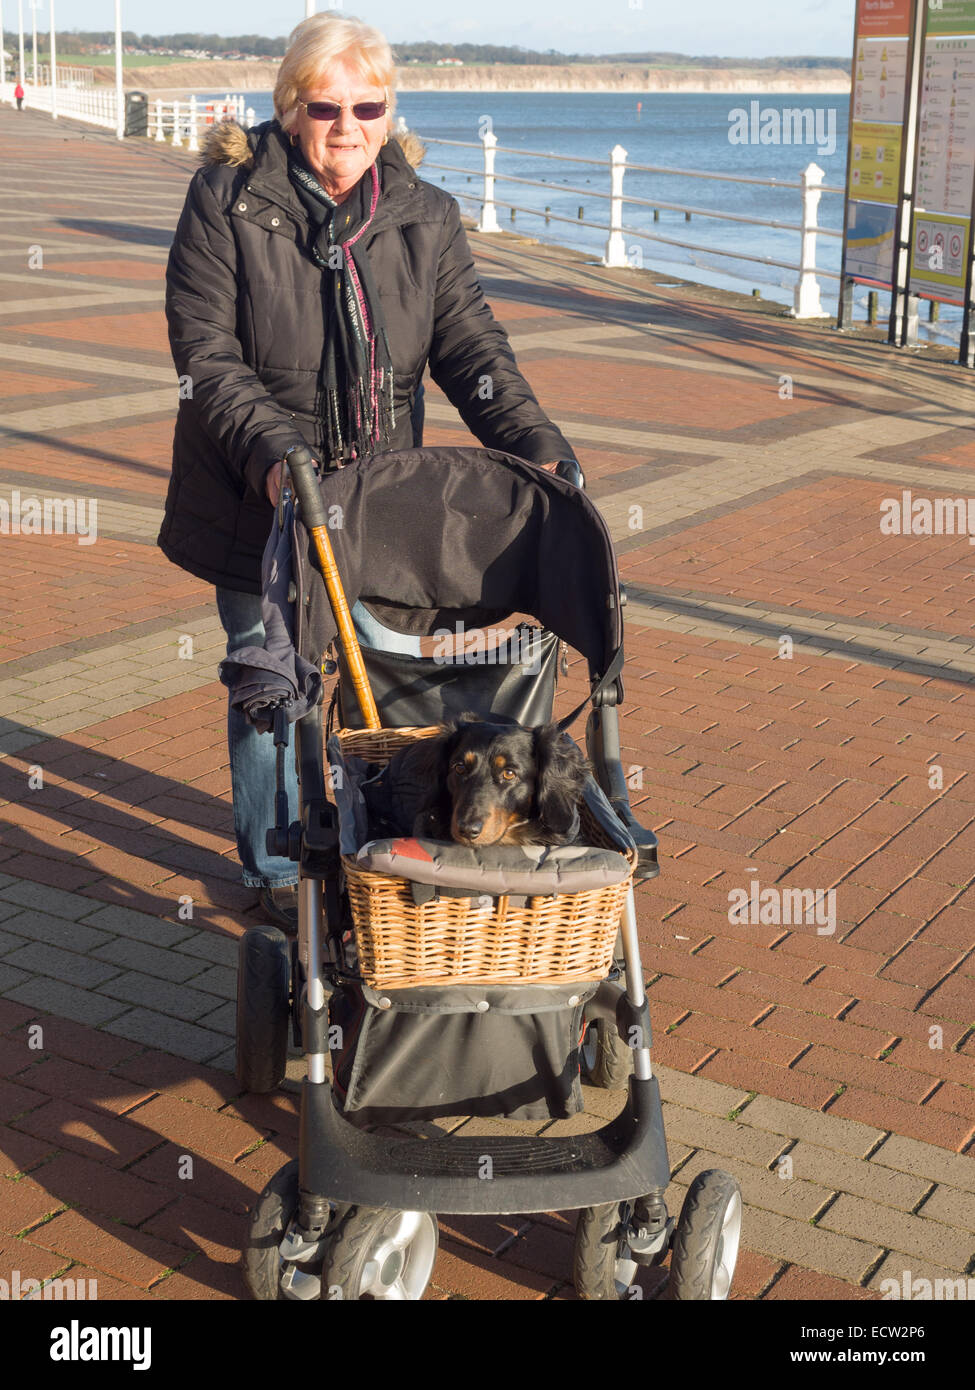 A woman taking her dog out in a buggy - Stock Image